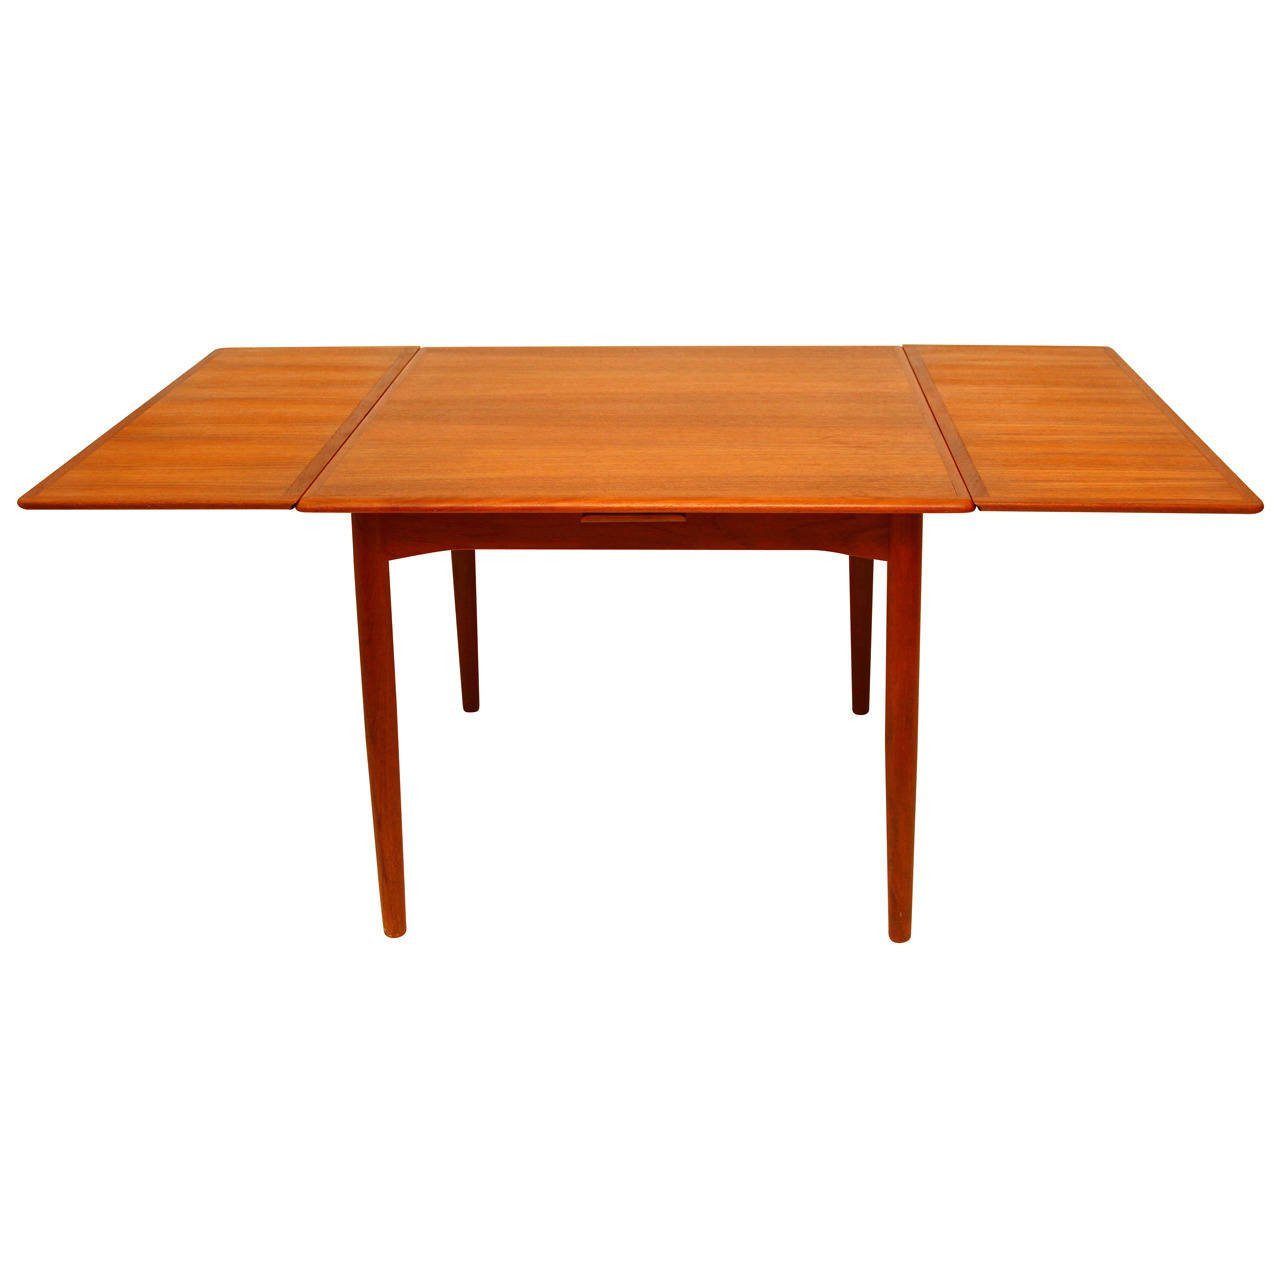 Best ideas about Extension Dining Table . Save or Pin Extension Dining Table Teak Danish Modern at 1stdibs Now.